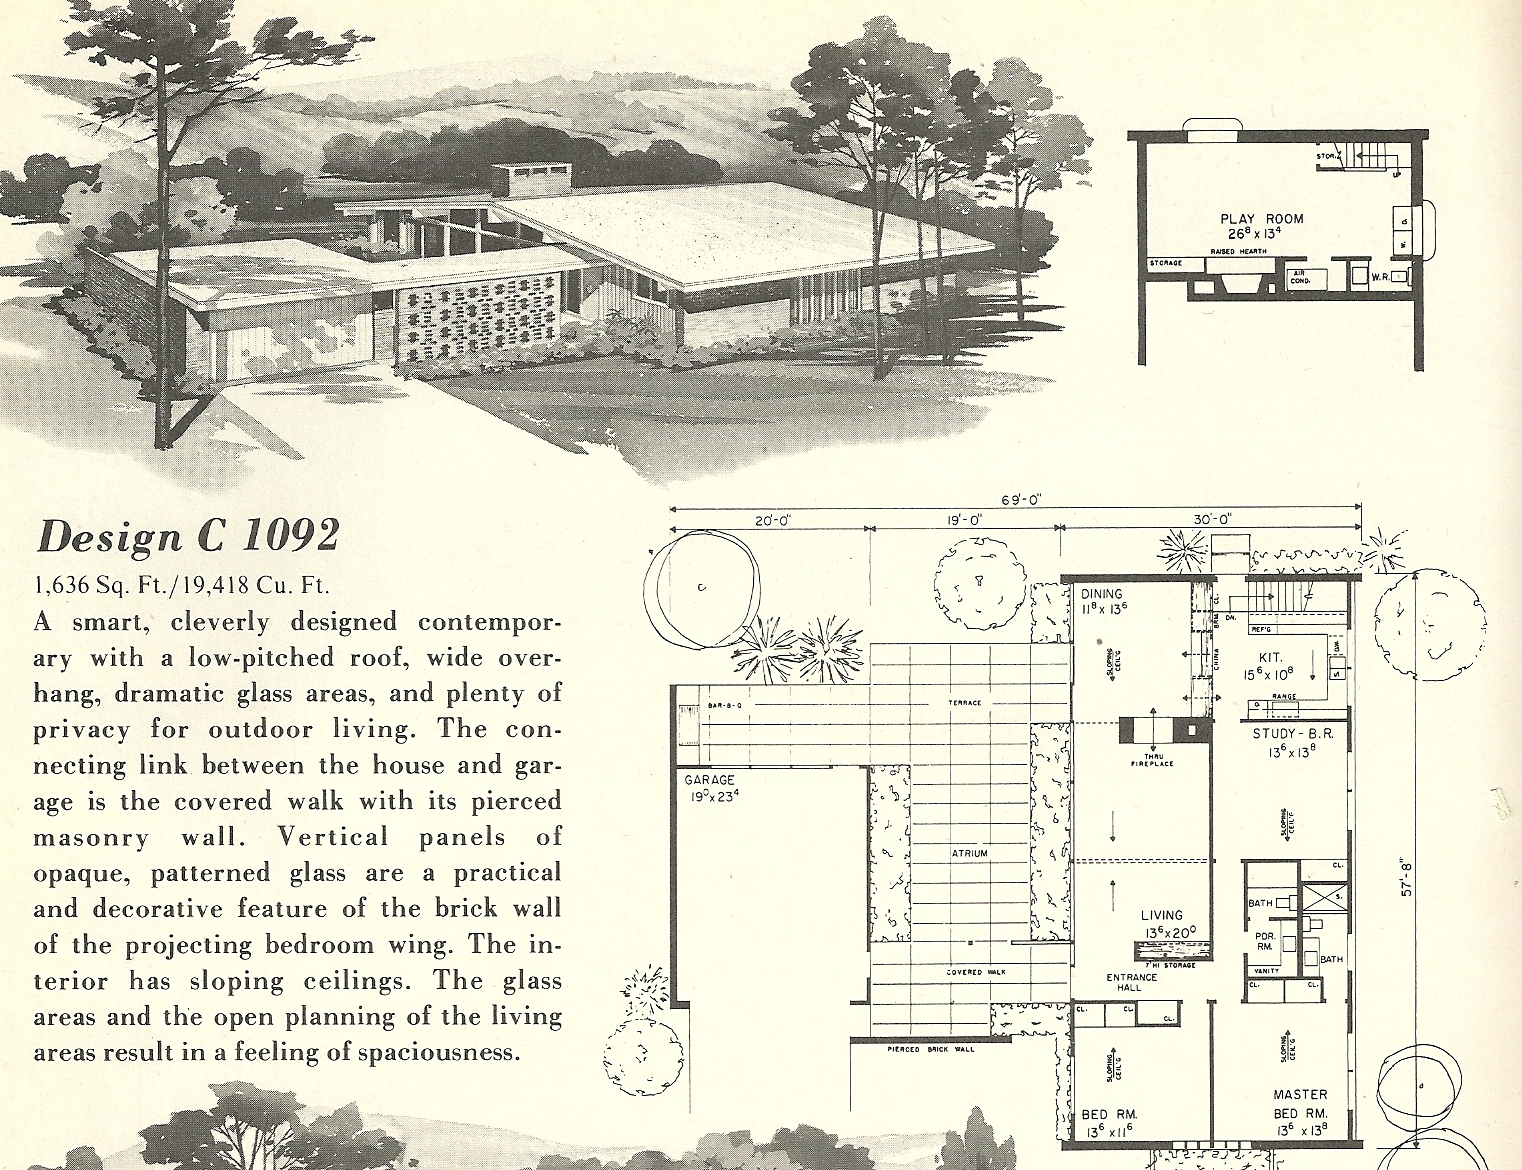 Vintage house plans 1092 for Mid century home plans